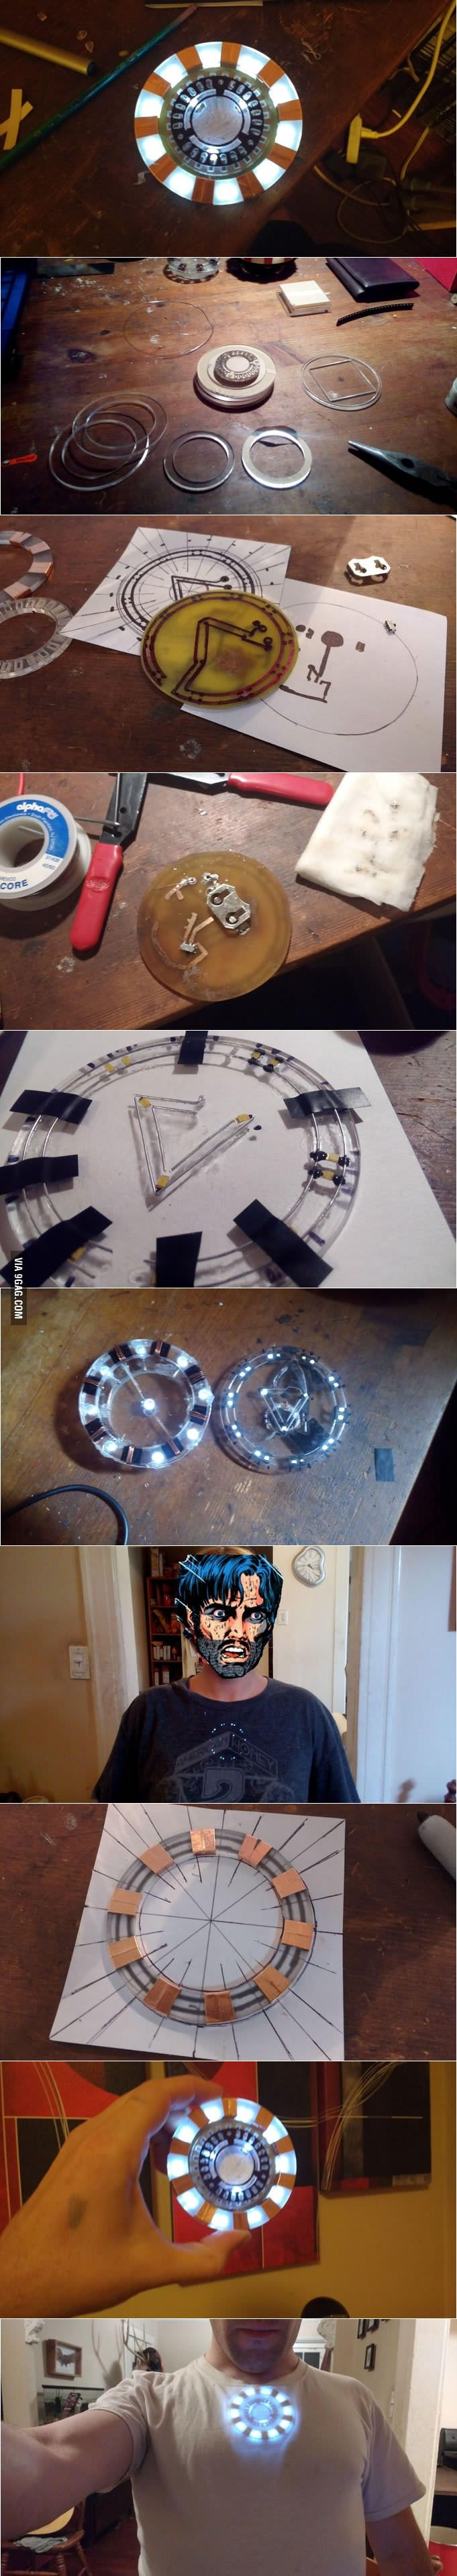 Wearable prosthetic arc reactor for Iron Man/Tony Stark cosplay (Andrew Gross) - 9GAG